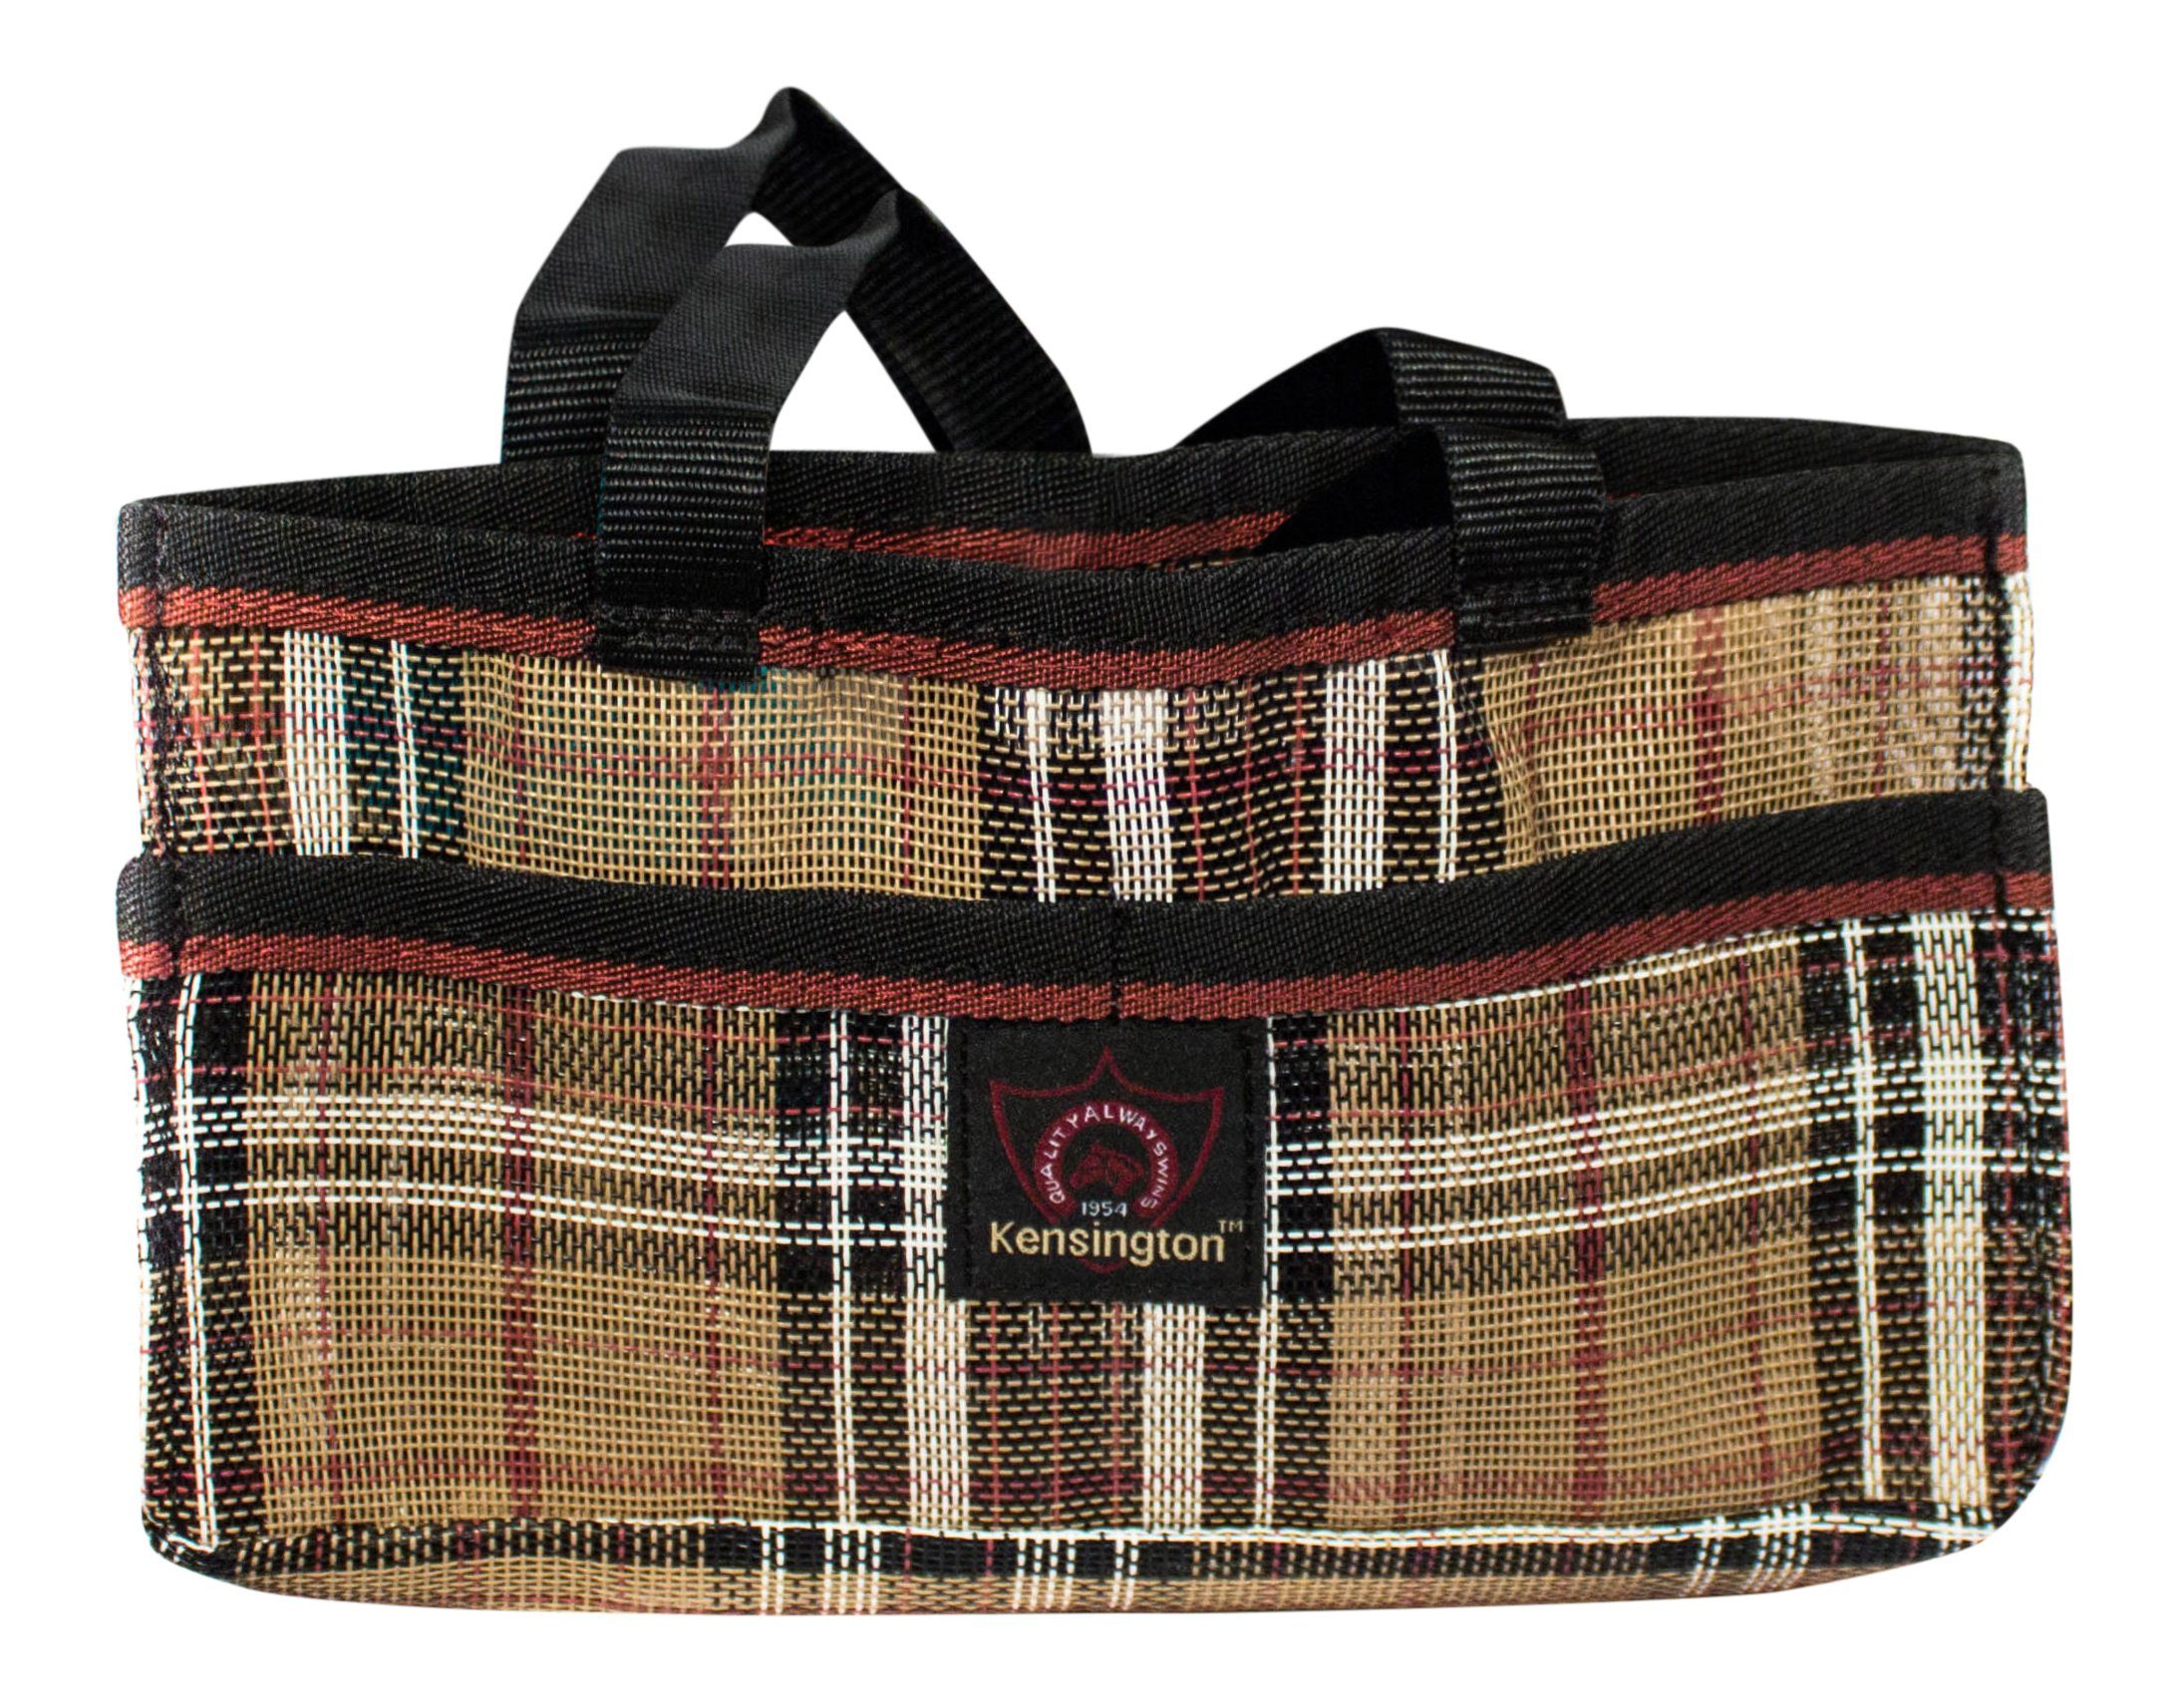 Kensington Horse Grooming Tote Bag -  Handy Upright Stow Away in Vibrant Plaid Designs - Very Durable with Lots of Storage Compartments - 12''L x 7''W x 7''D by Kensington Protective Products